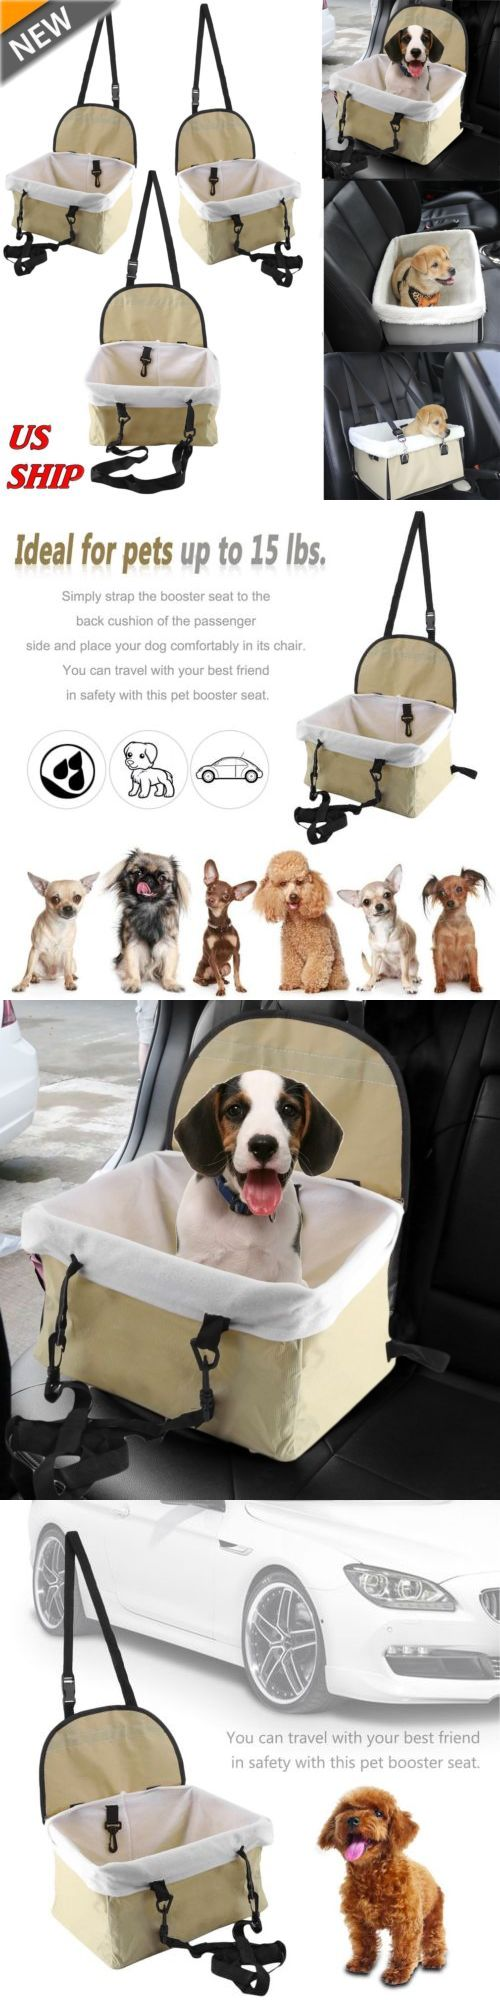 Car seats and barriers car seat for dog pet cat booster seat